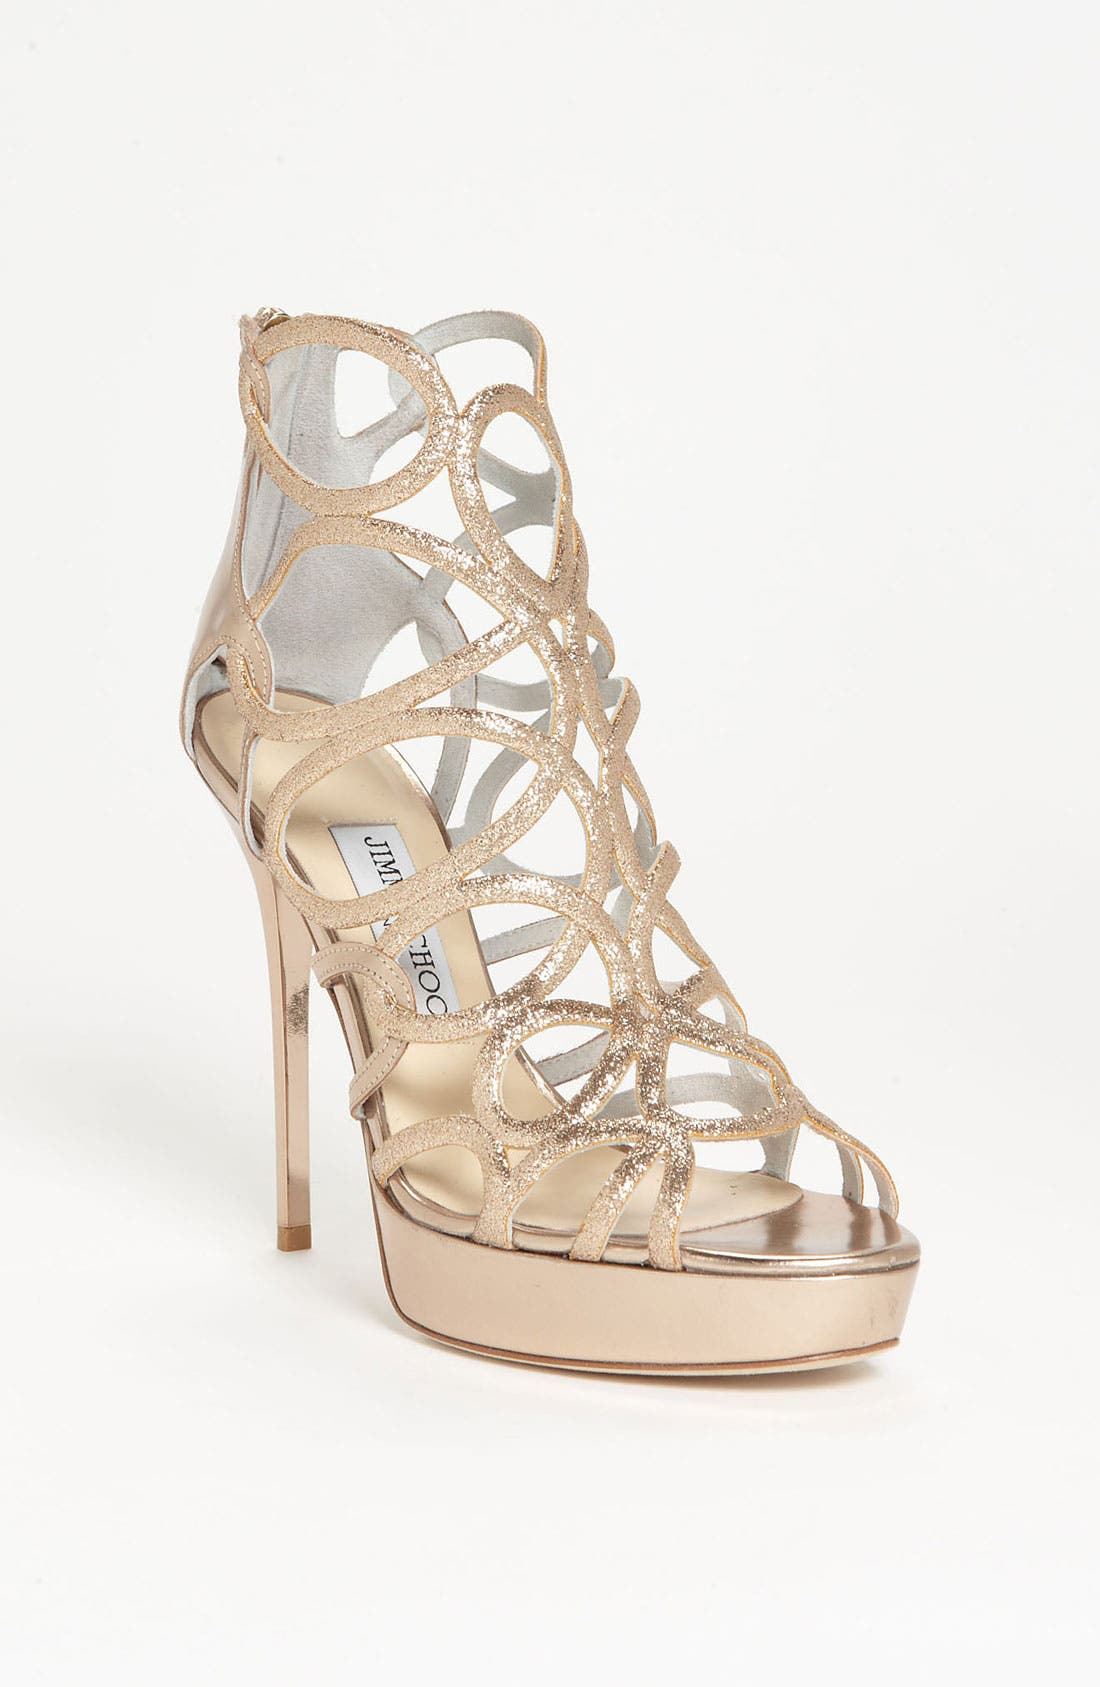 Alternate Image 1 Selected - Jimmy Choo 'Blast' Platform Sandal